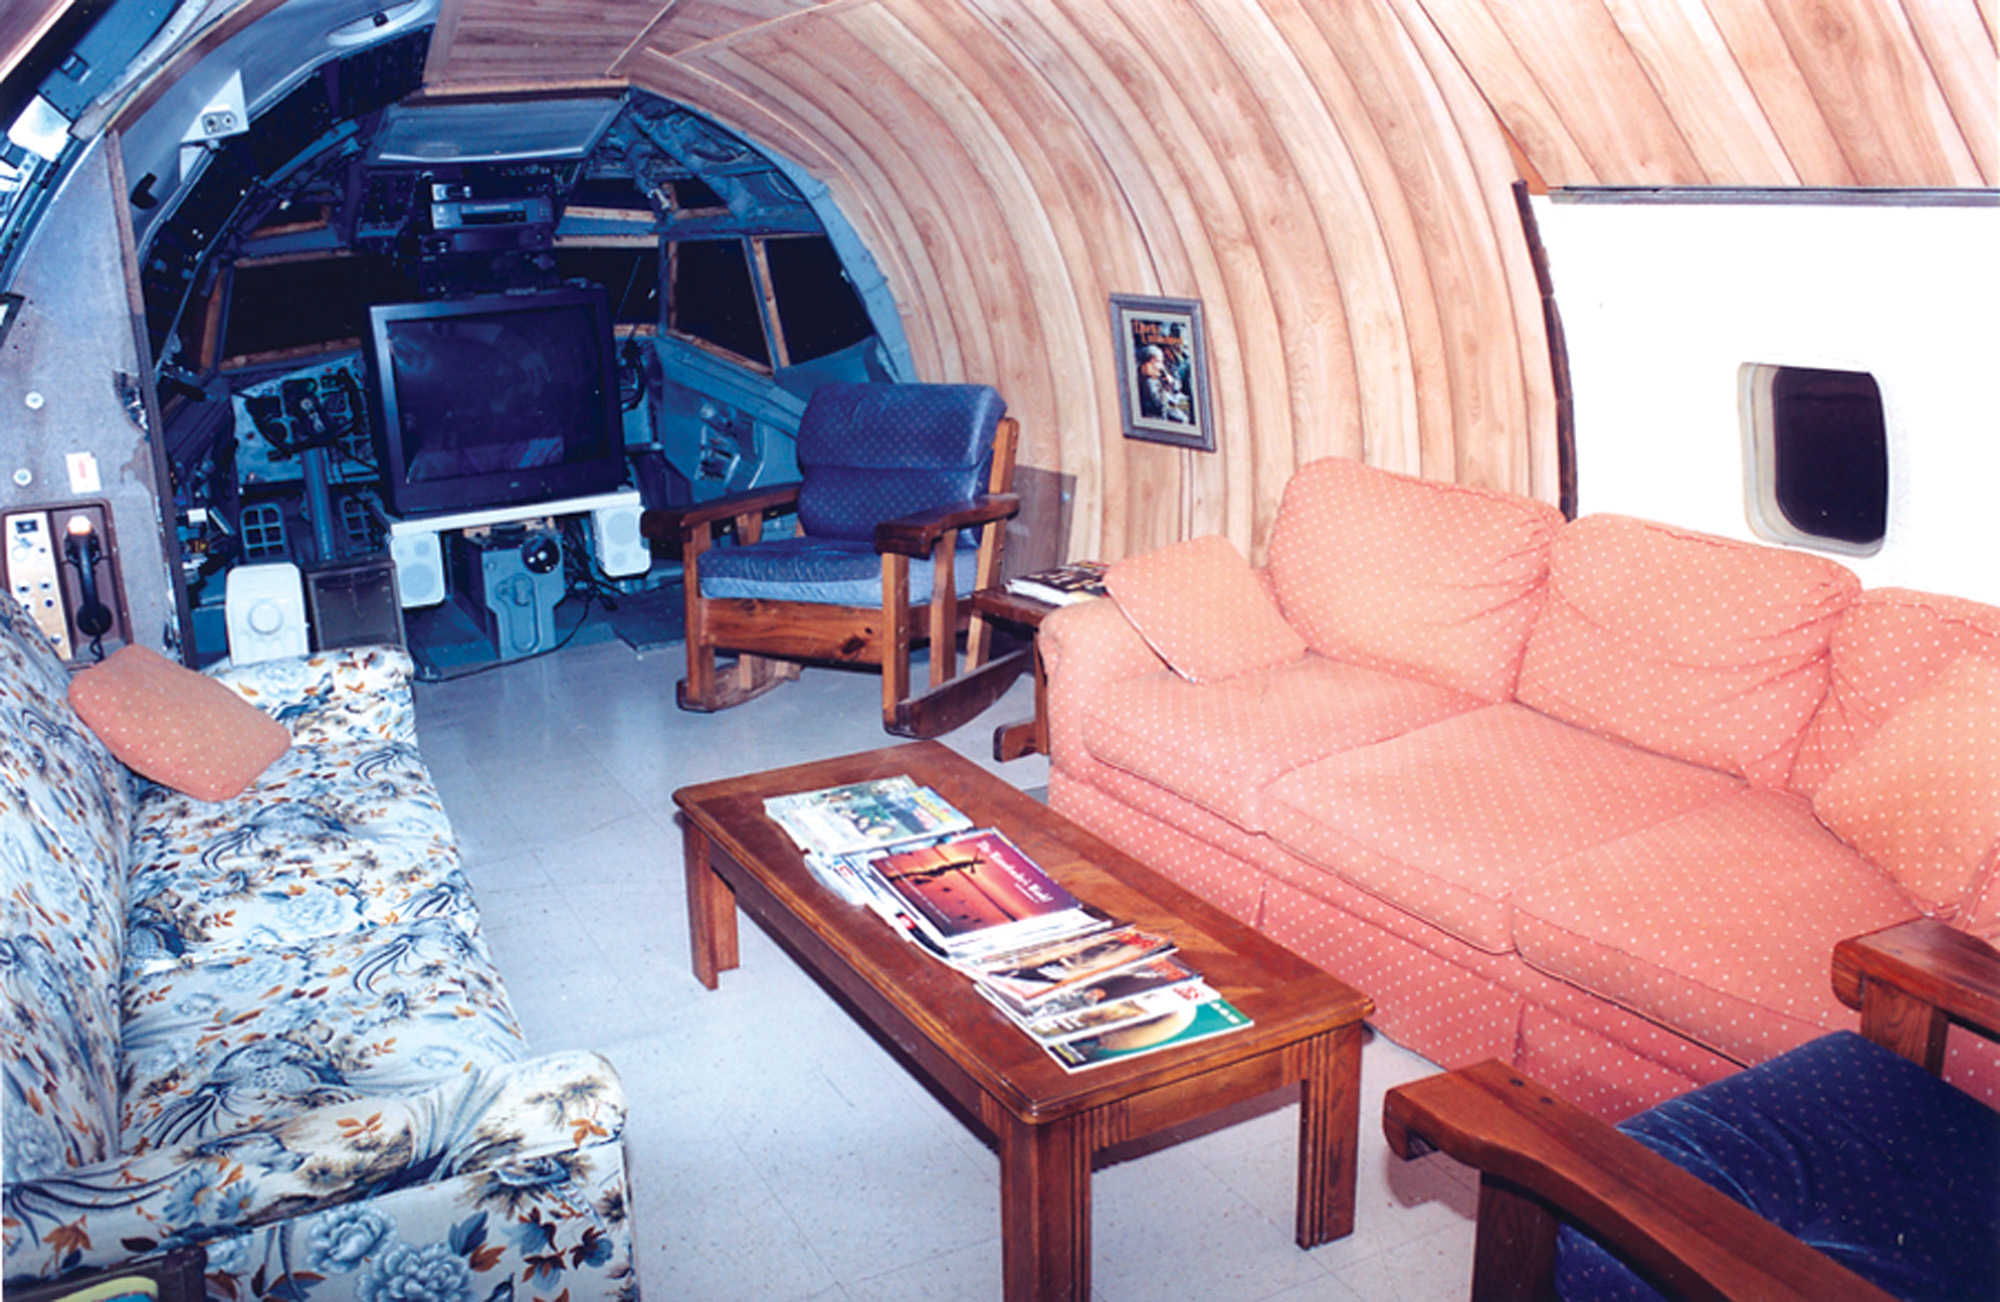 A living room occupies the forward section of the converted airliner. The TV and entertainment